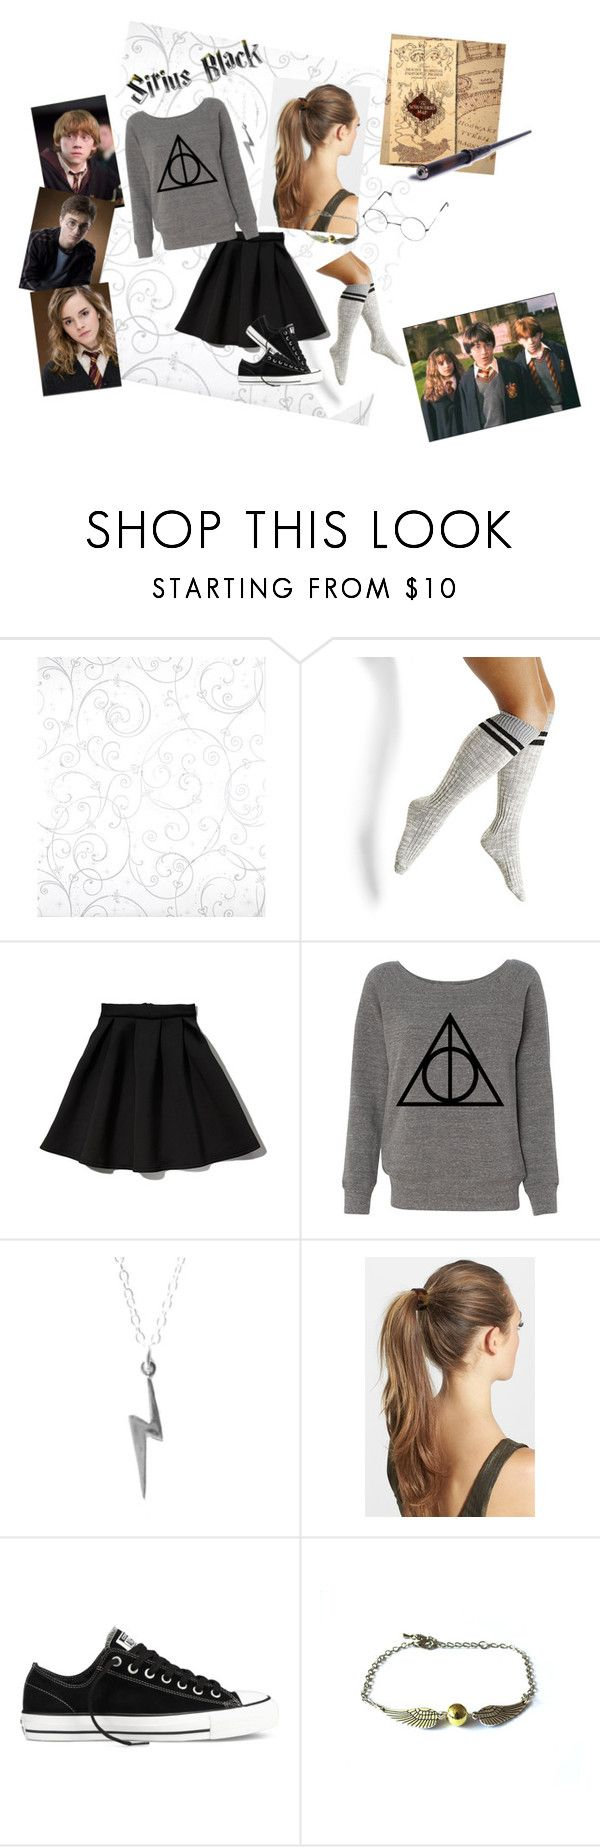 """Untitled #189"" by ritaabreu ❤ liked on Polyvore featuring Steve Madden, Abercrombie & Fitch, France Luxe, jared, Converse, Emma Watson, Phelan, Sirius and Radcliffe"